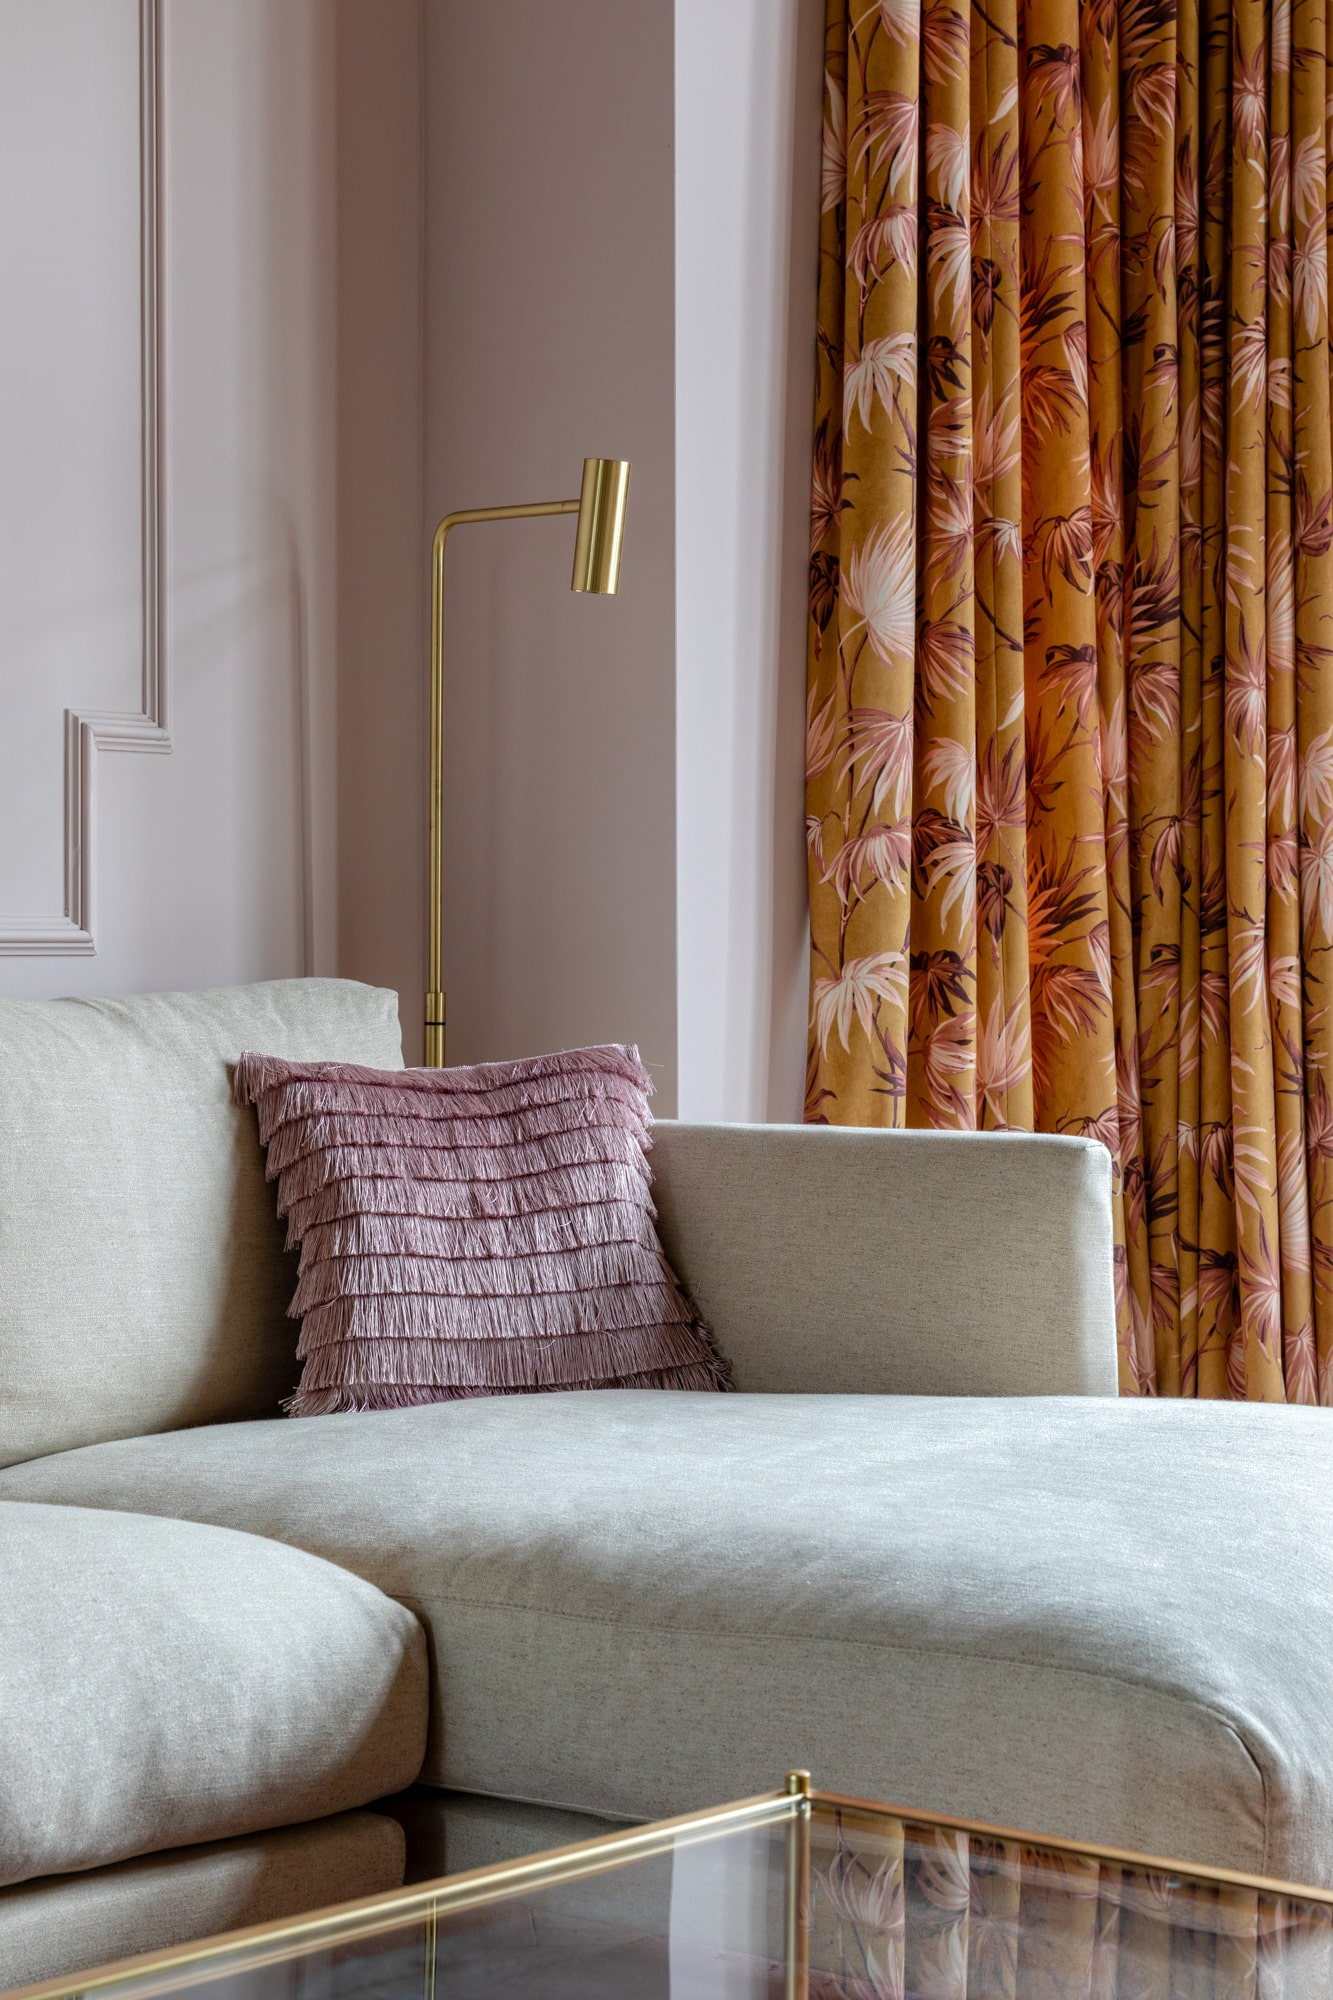 Interior design shot: beige sofa; pink cushion with tassels; floral print on curtains